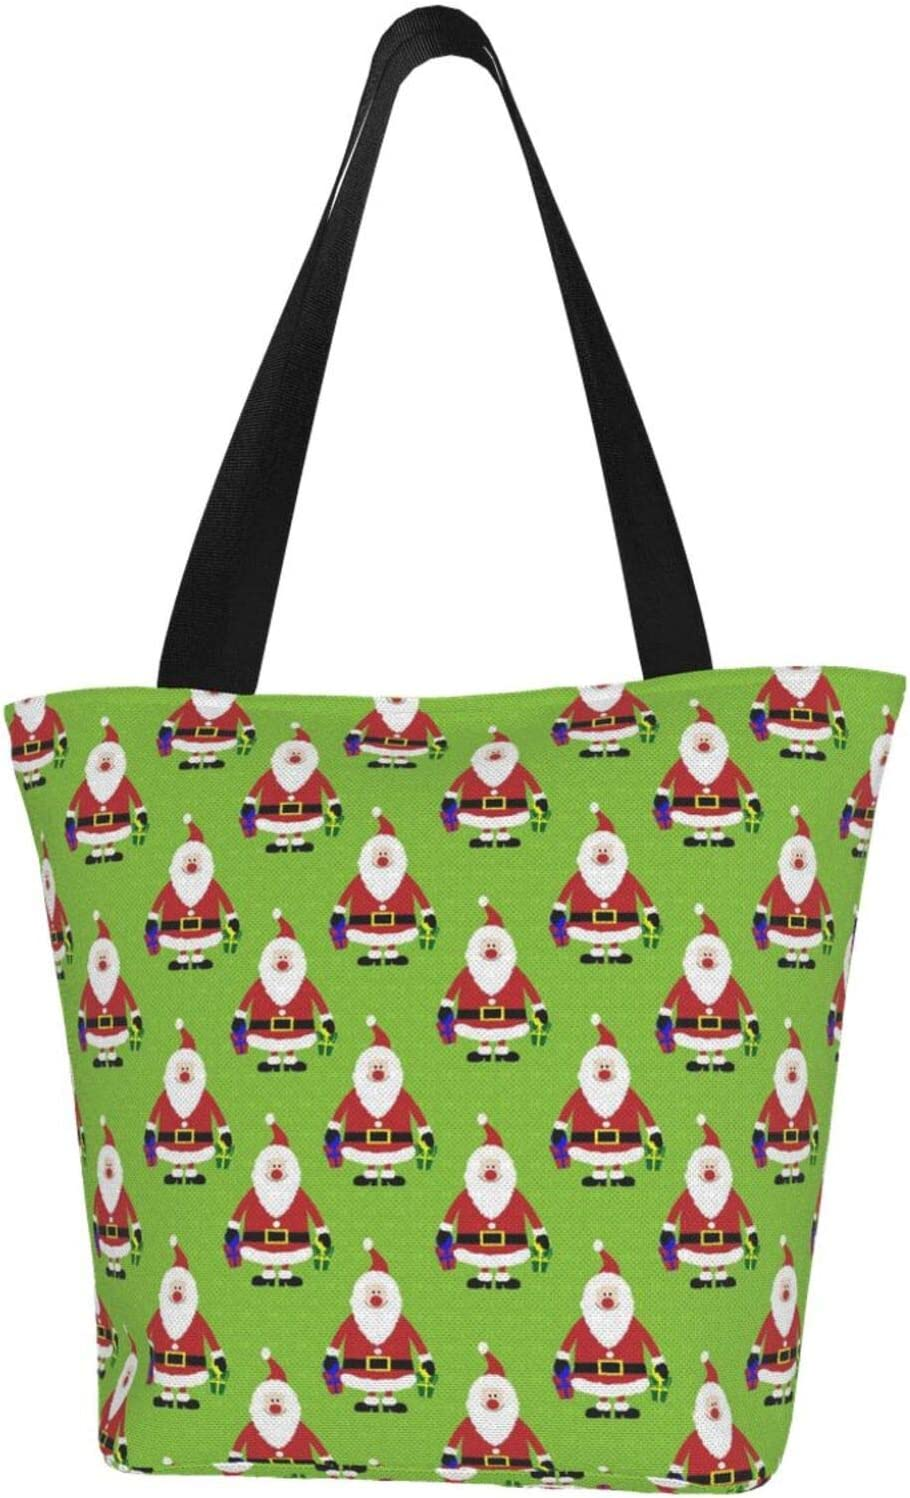 AKLID Max Oakland Mall 90% OFF Christmas Santa Cute Extra Water Resistant To Canvas Large